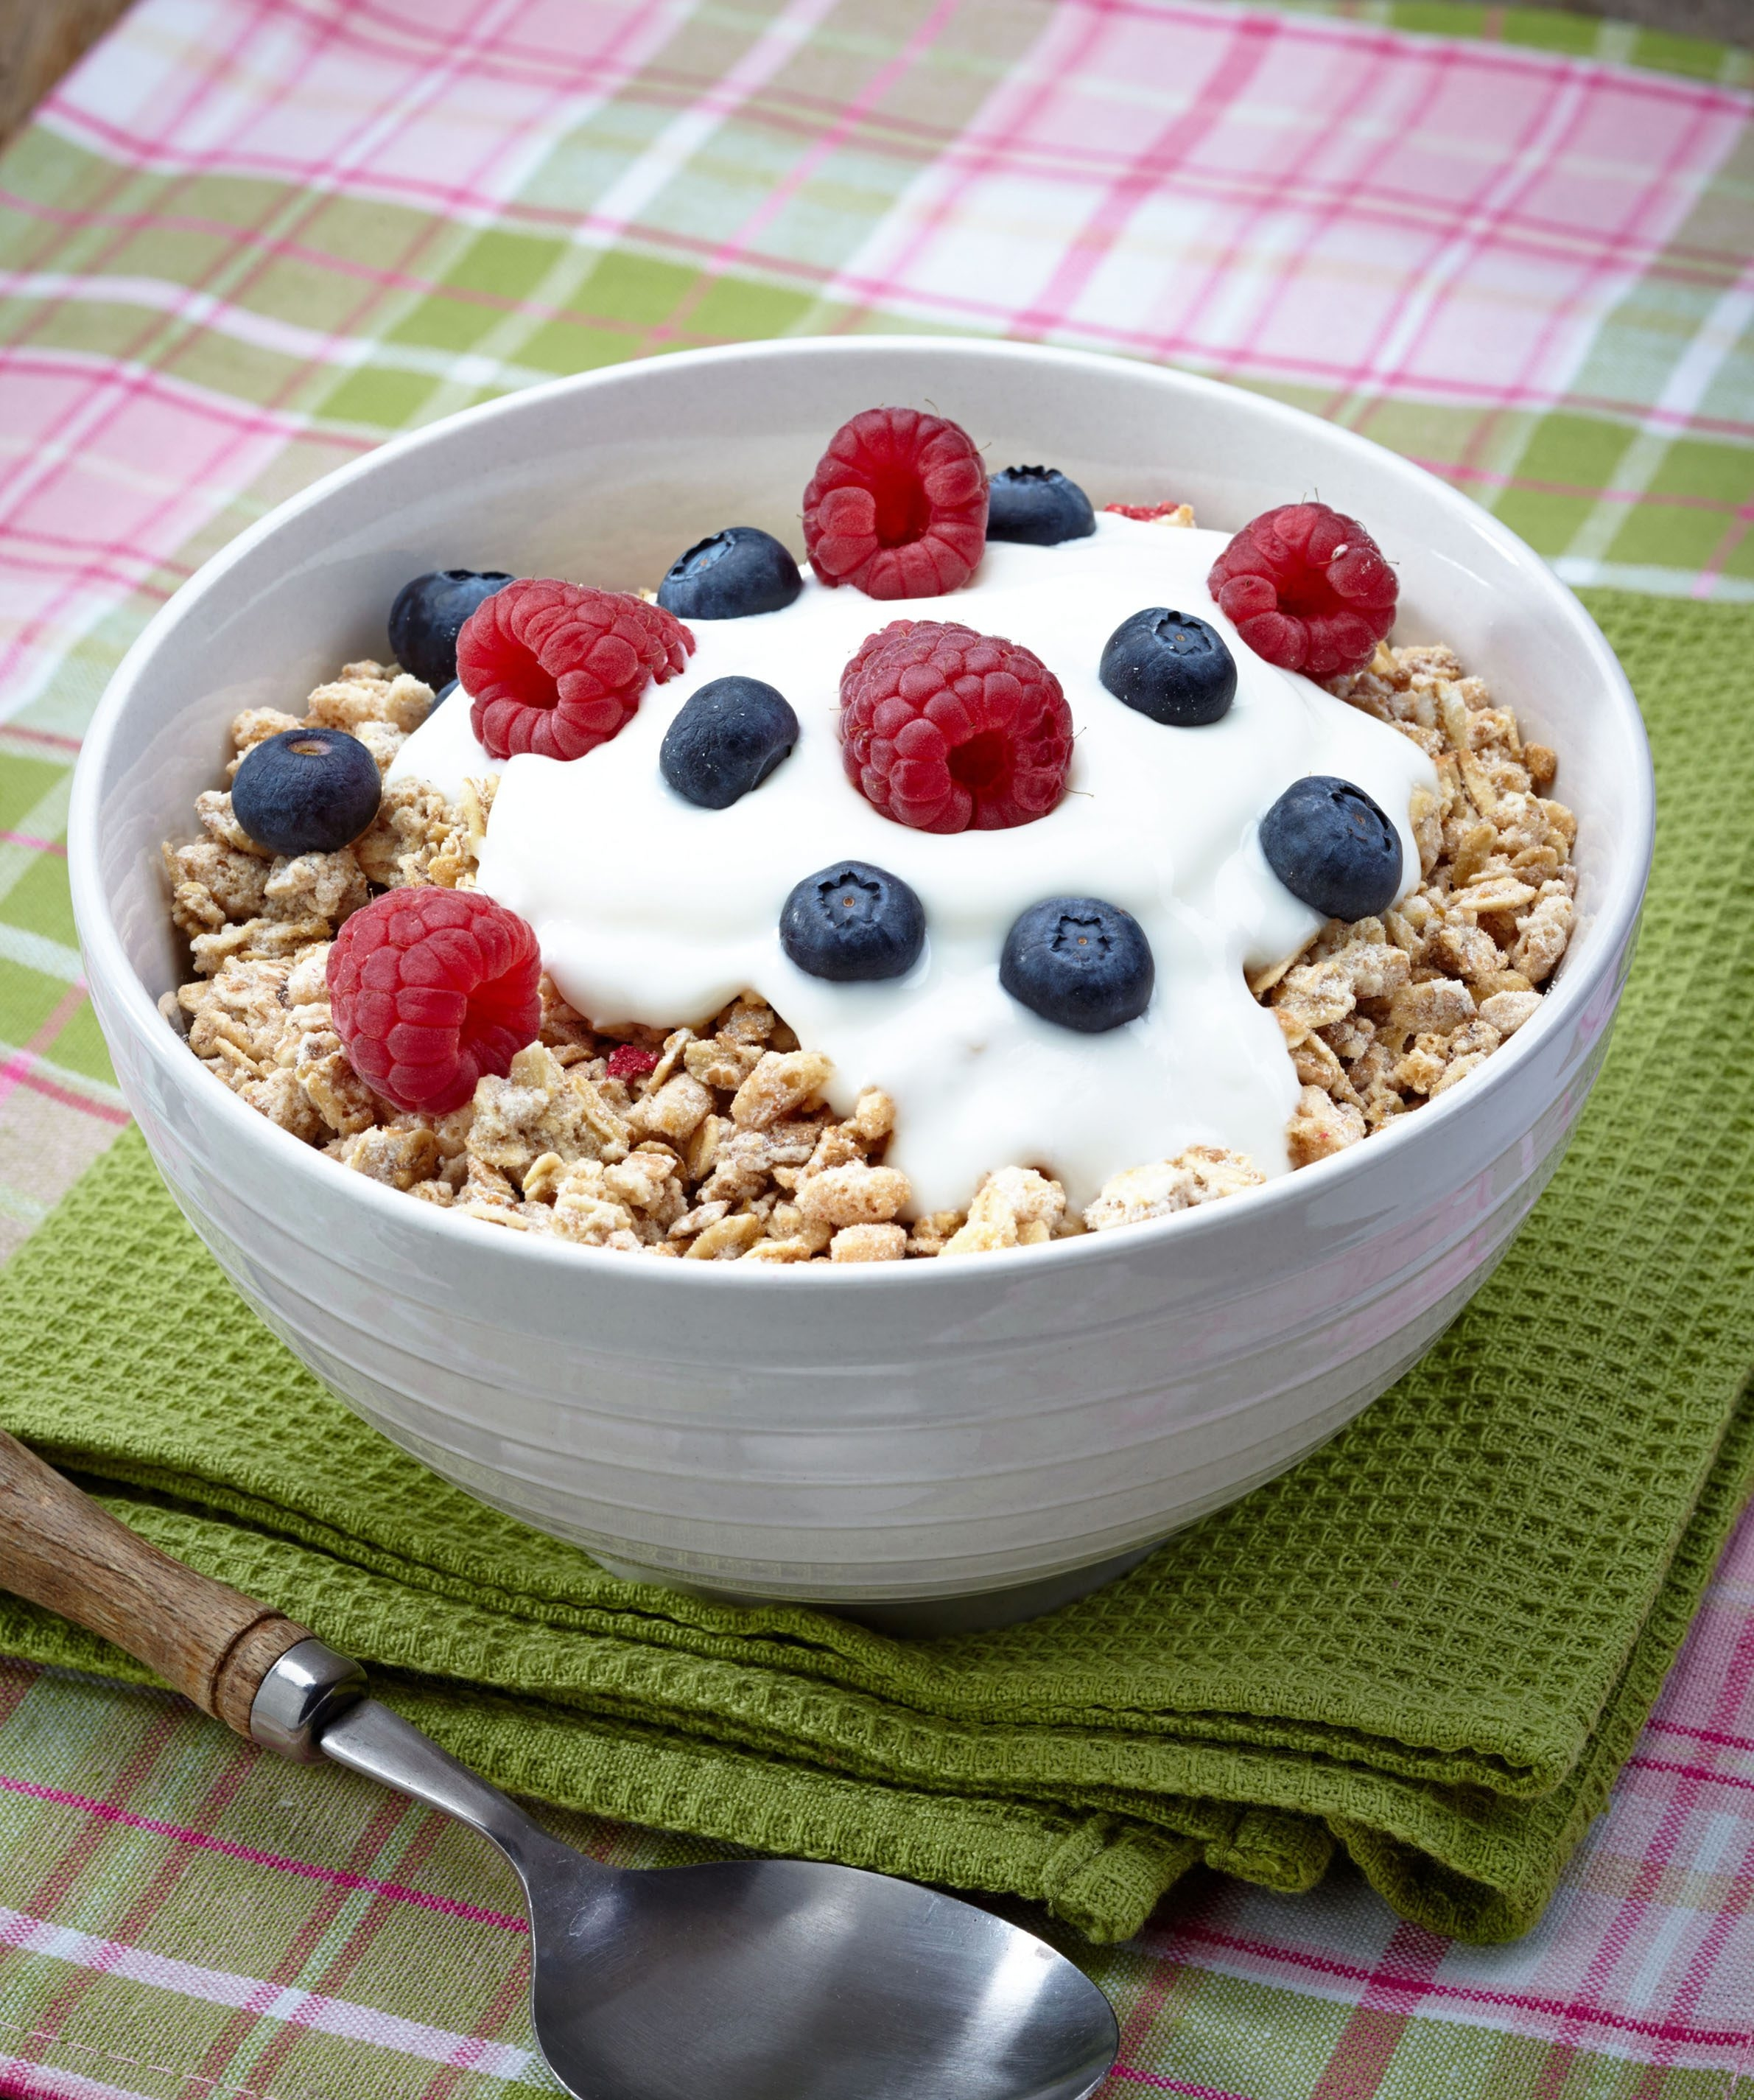 Many cereals use dried fruit coated with sugar. Better to add fresh or unsweetened dried fruit.